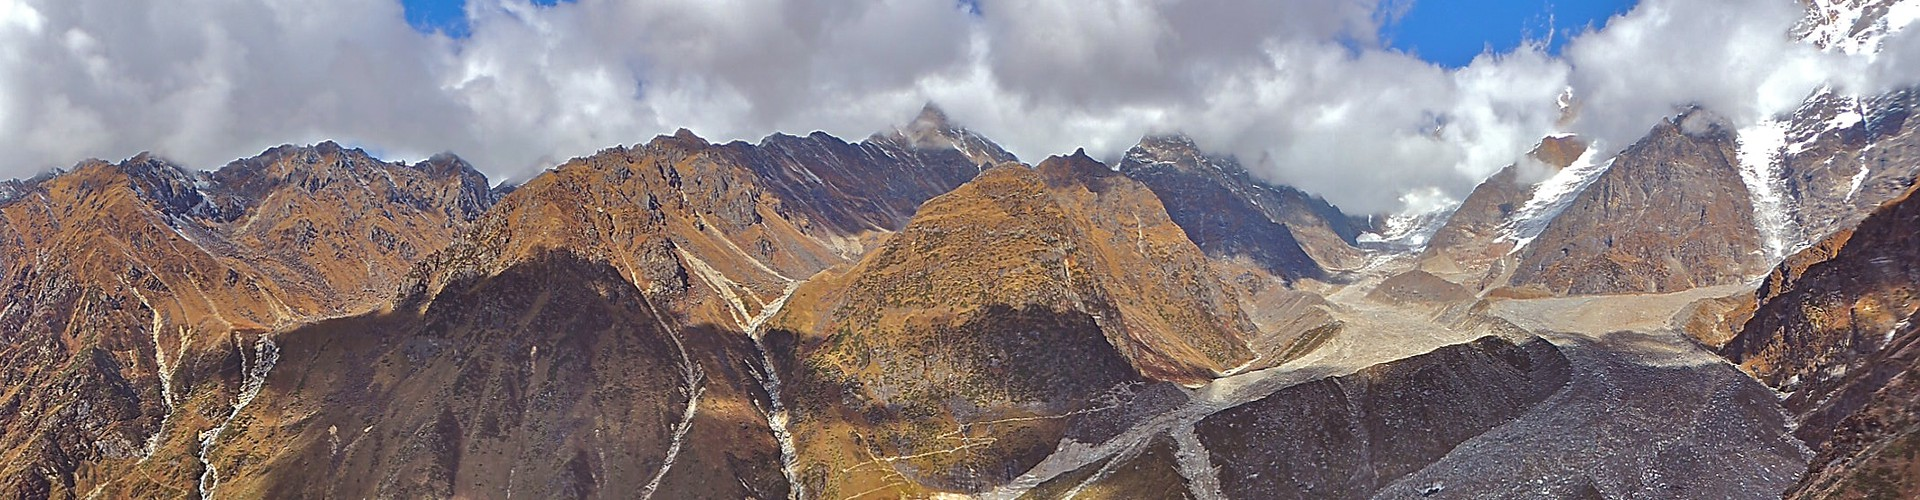 Kedarnath landslide (Credit: Vaibhav Kaul, University of Sheffield)